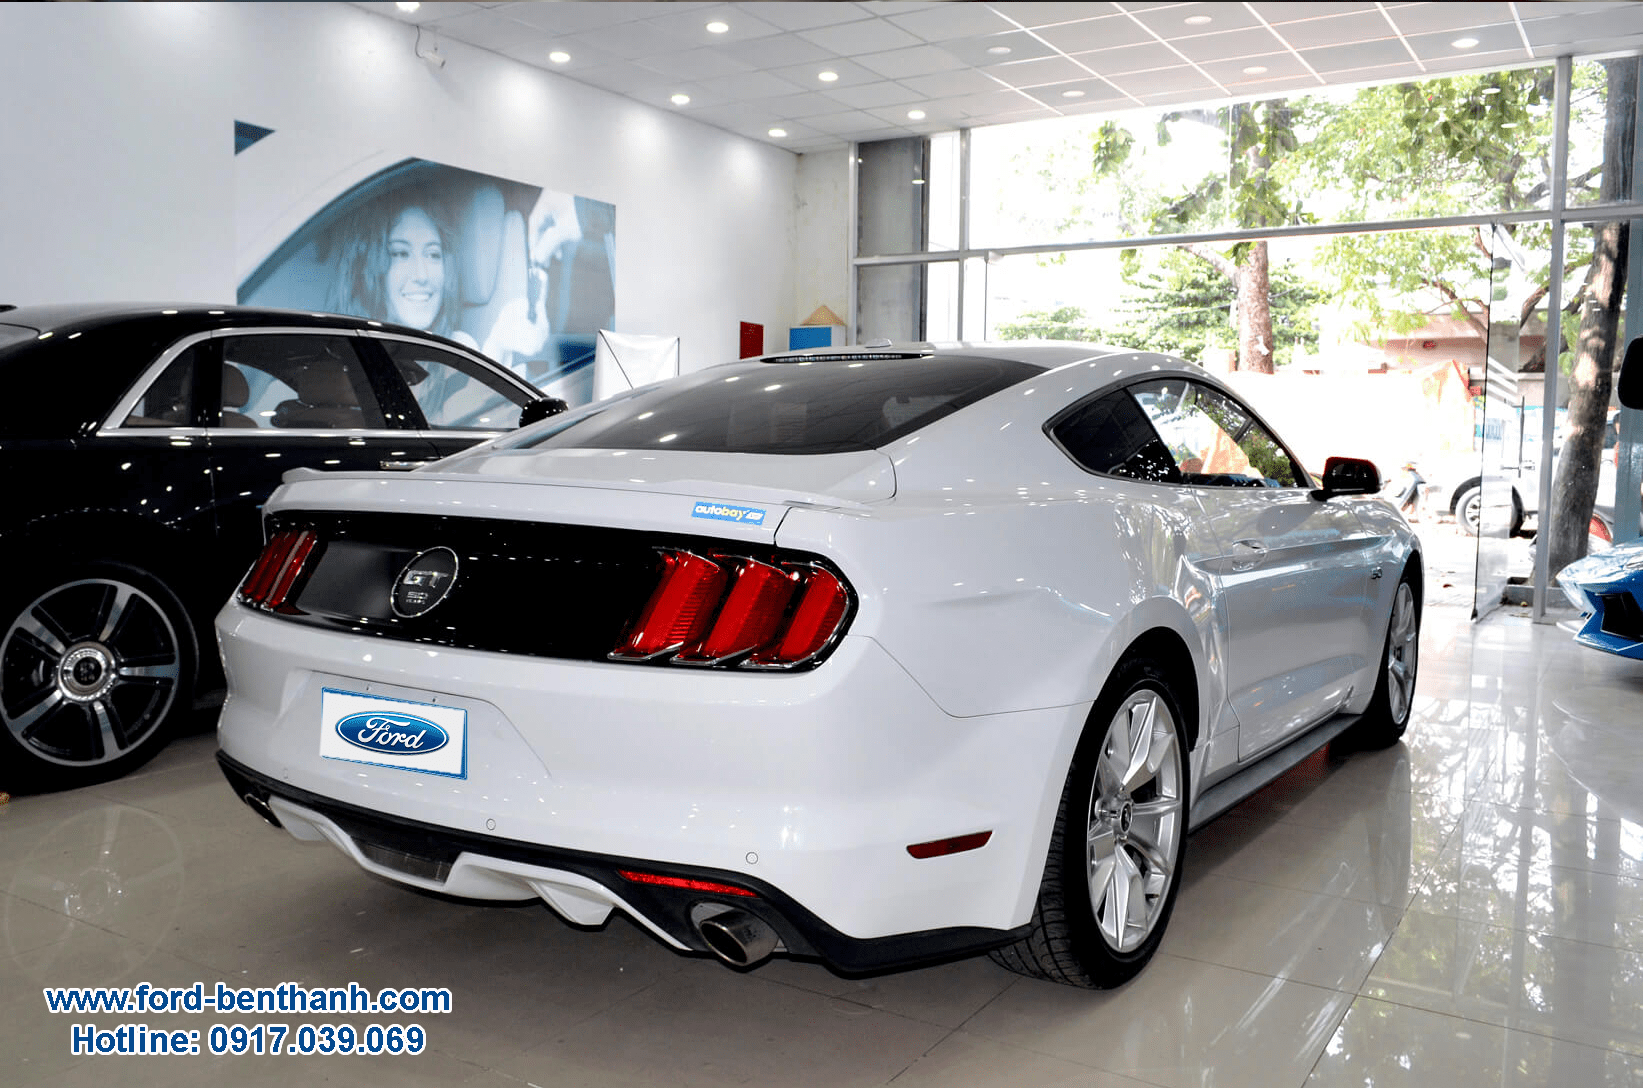 ford-mustang-ford-benthanh-0917039069-3